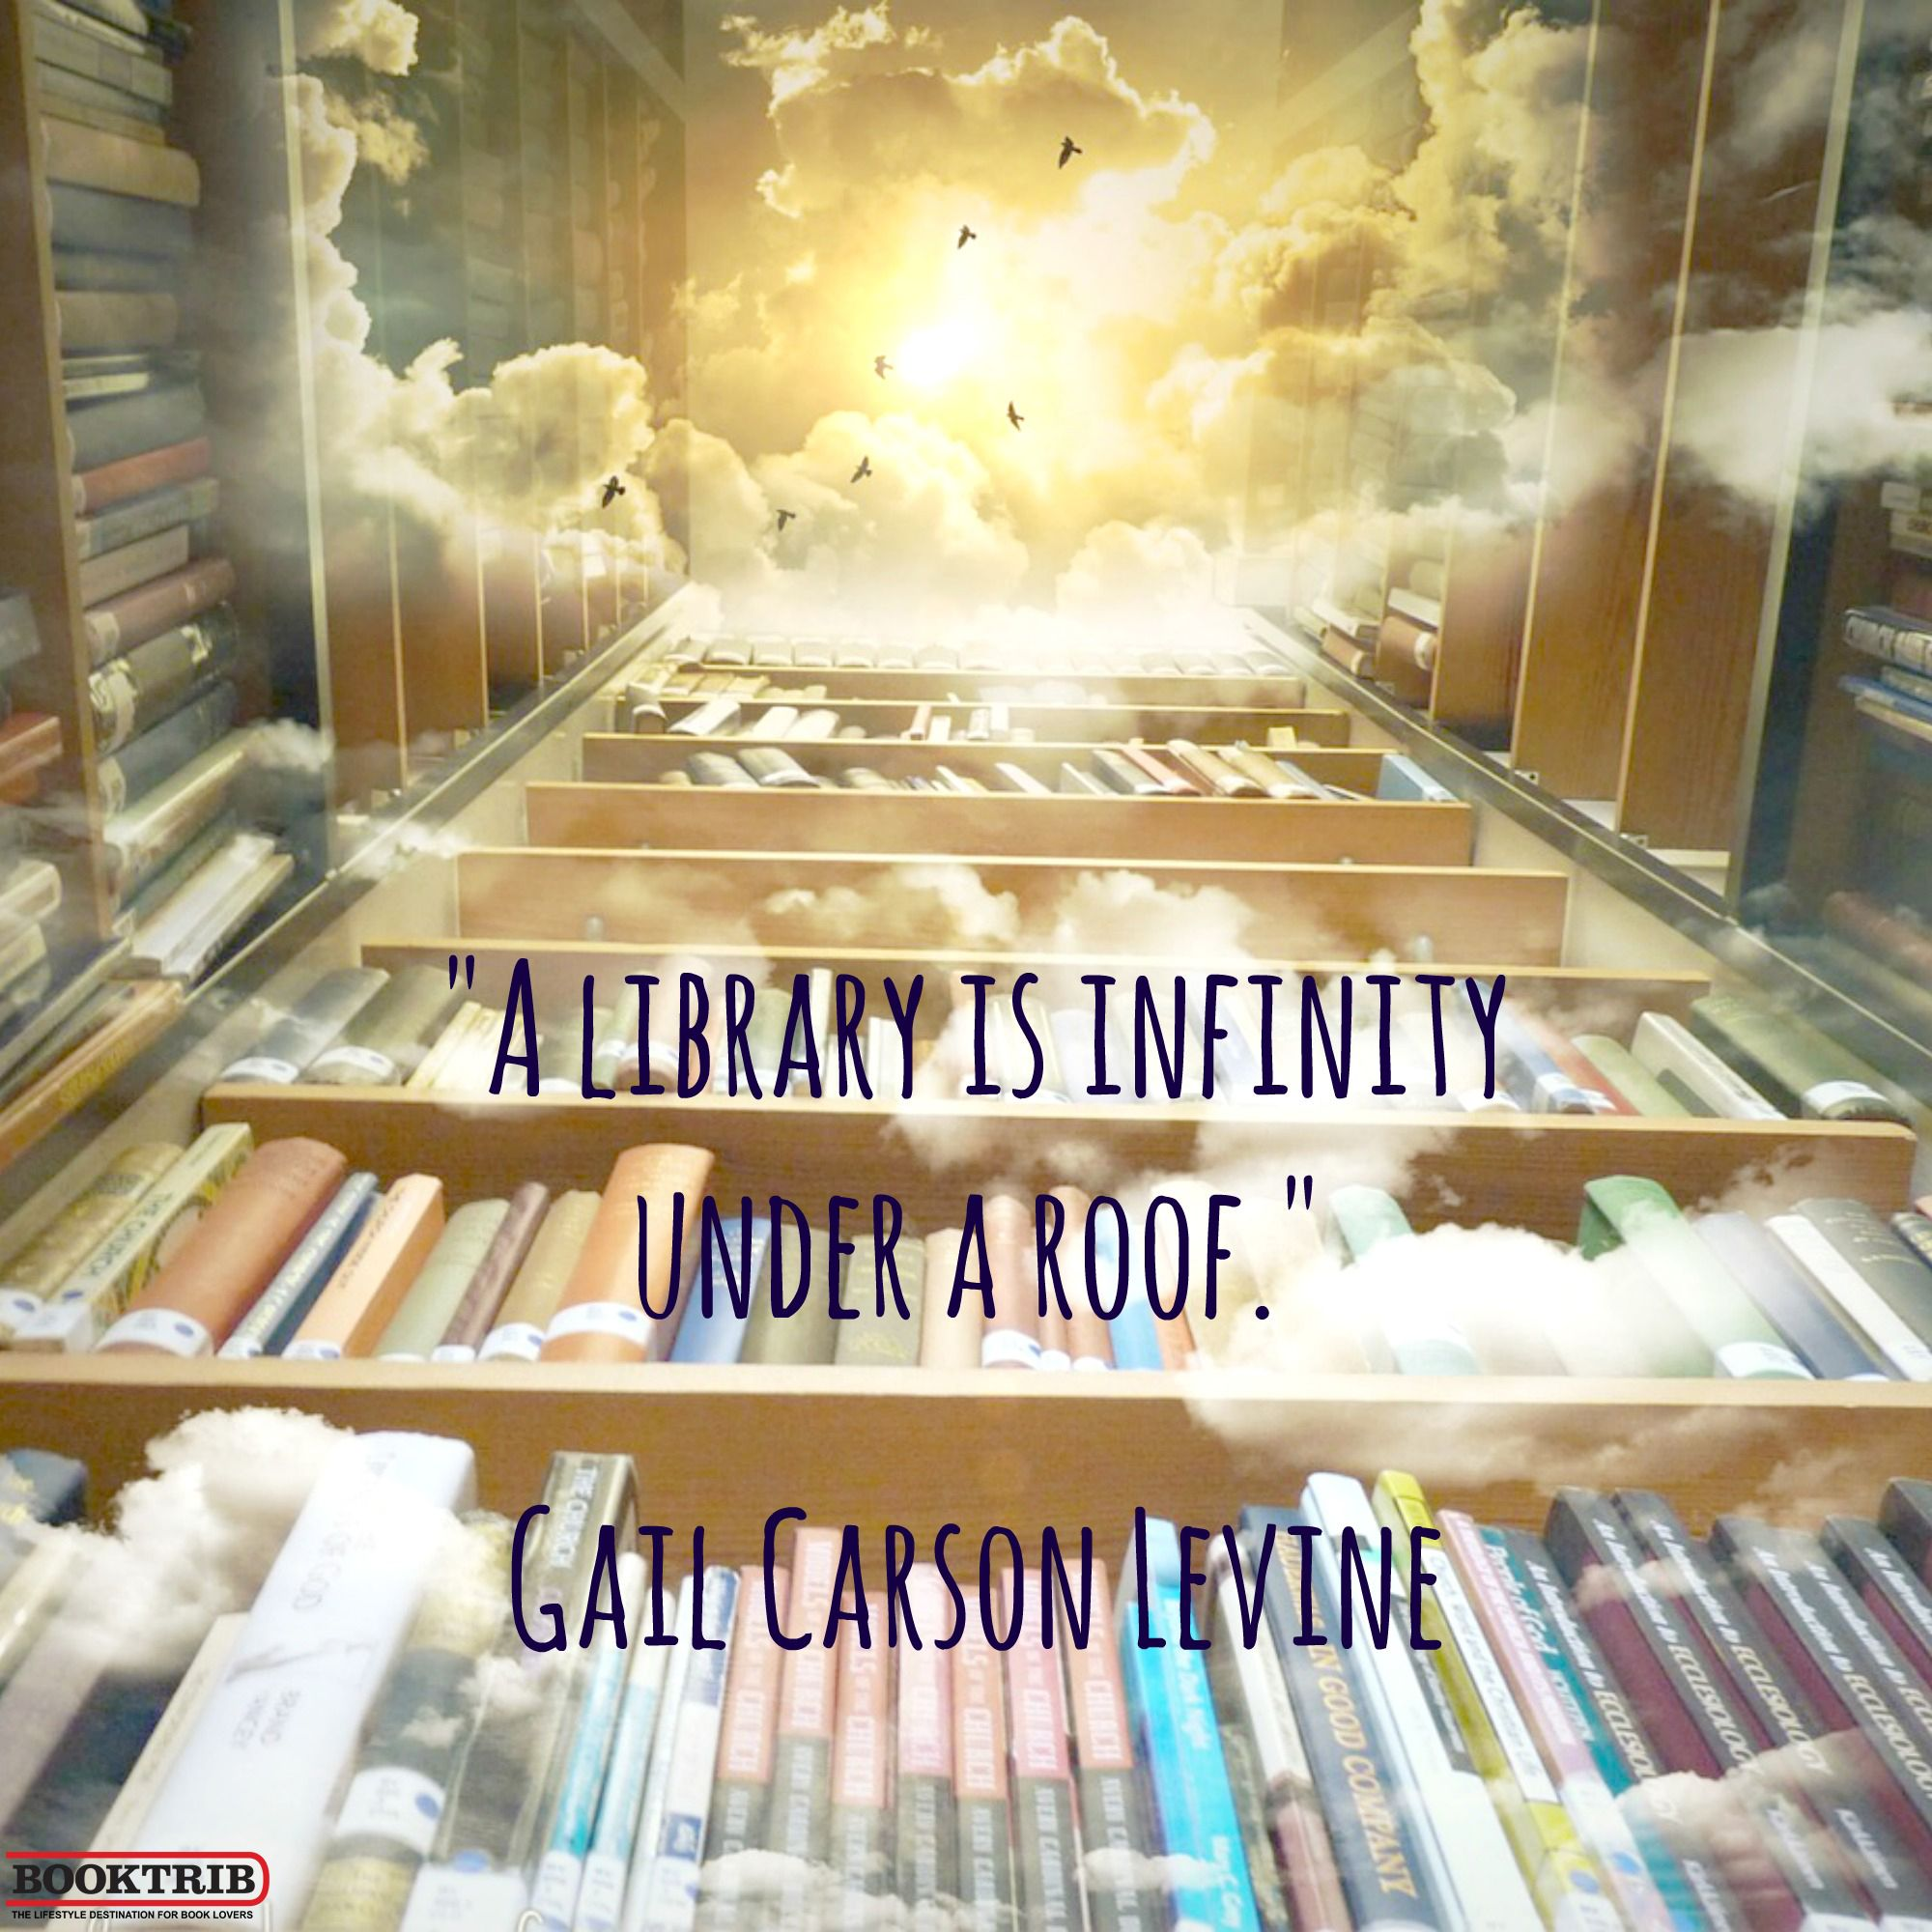 A Library Is Infinity Under A Roof Gail Carson Levine